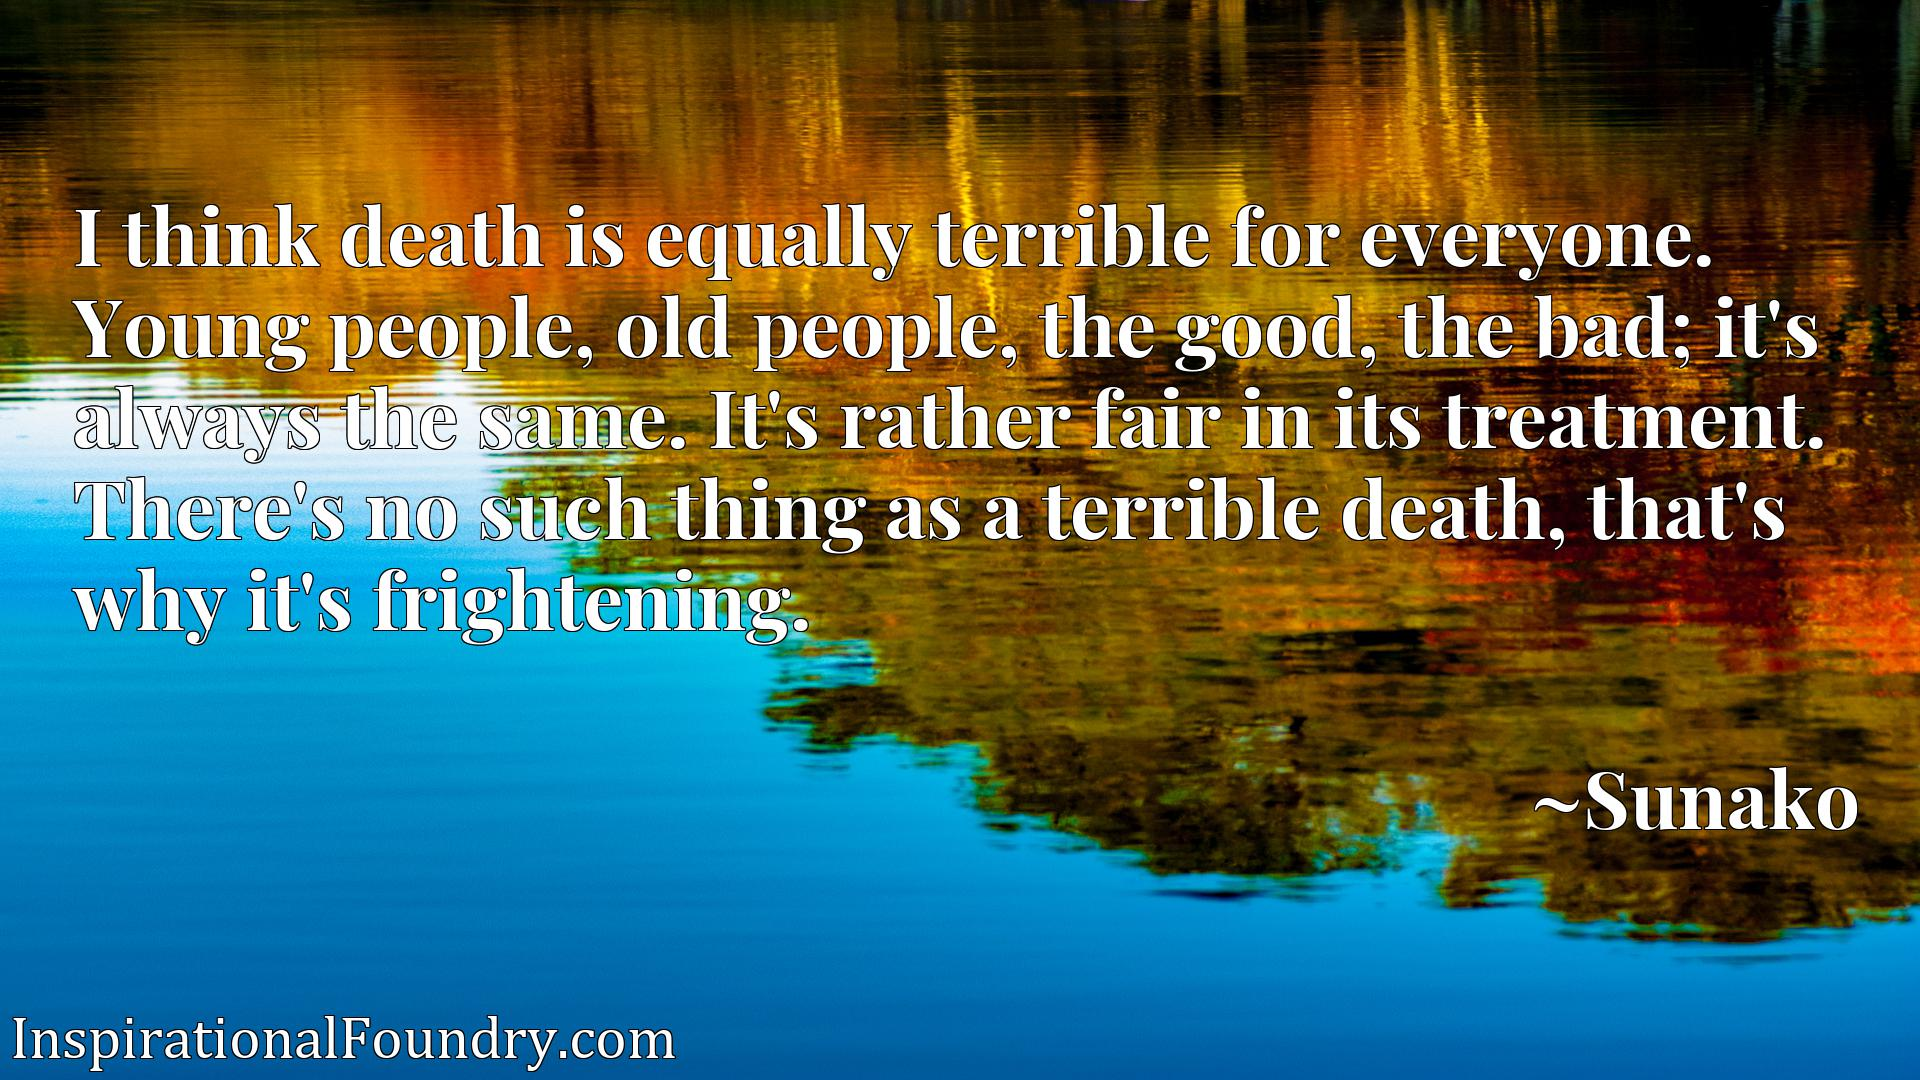 Quote Picture :I think death is equally terrible for everyone. Young people, old people, the good, the bad; it's always the same. It's rather fair in its treatment. There's no such thing as a terrible death, that's why it's frightening.